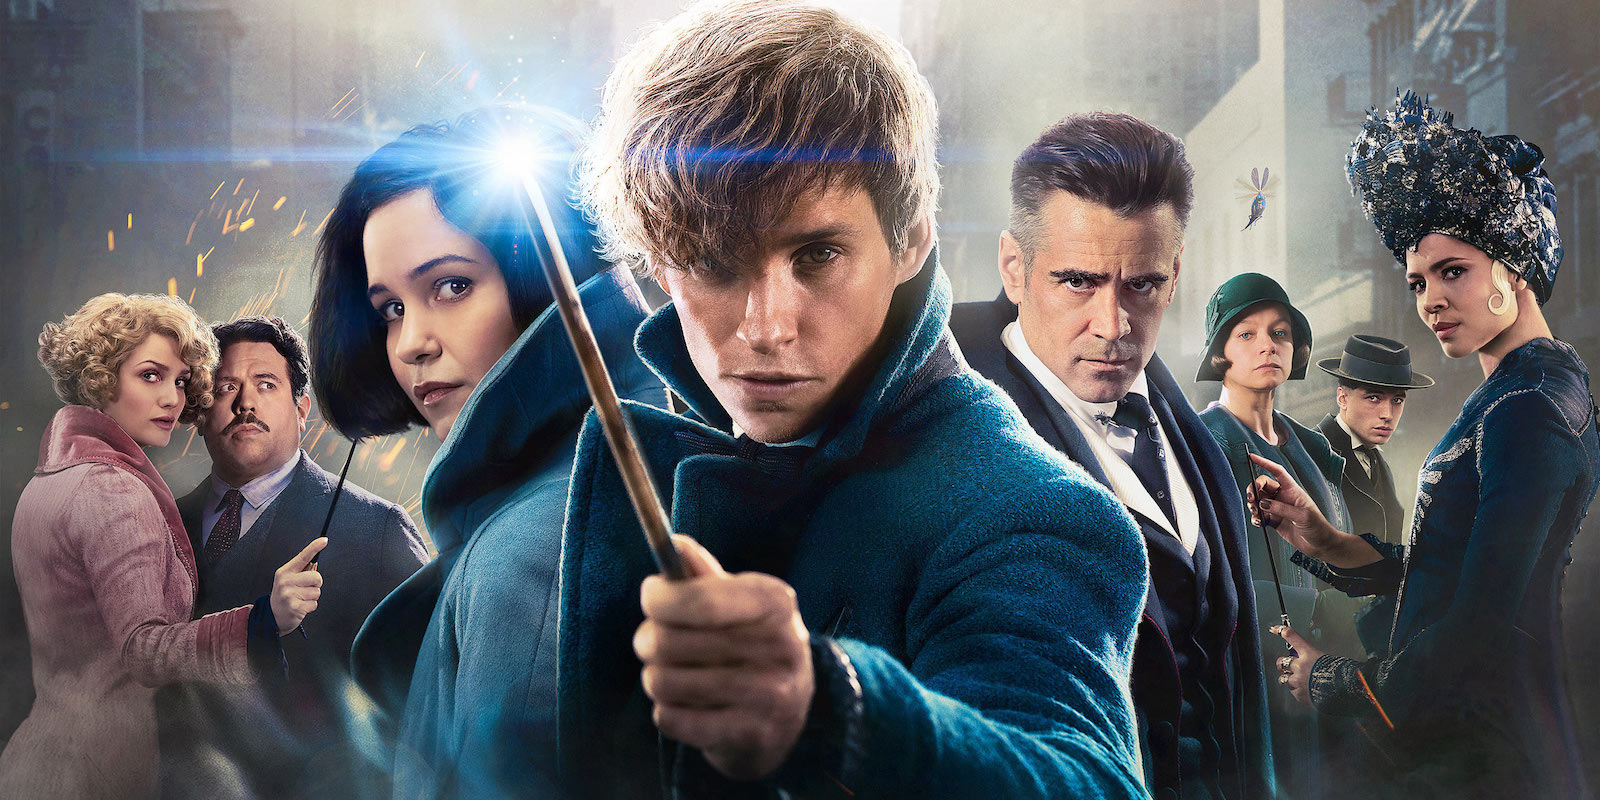 Warner Bros. released major plot details for the very anticipated sequel Fantastic Beasts and Where to Find Them. (Photo: Release)